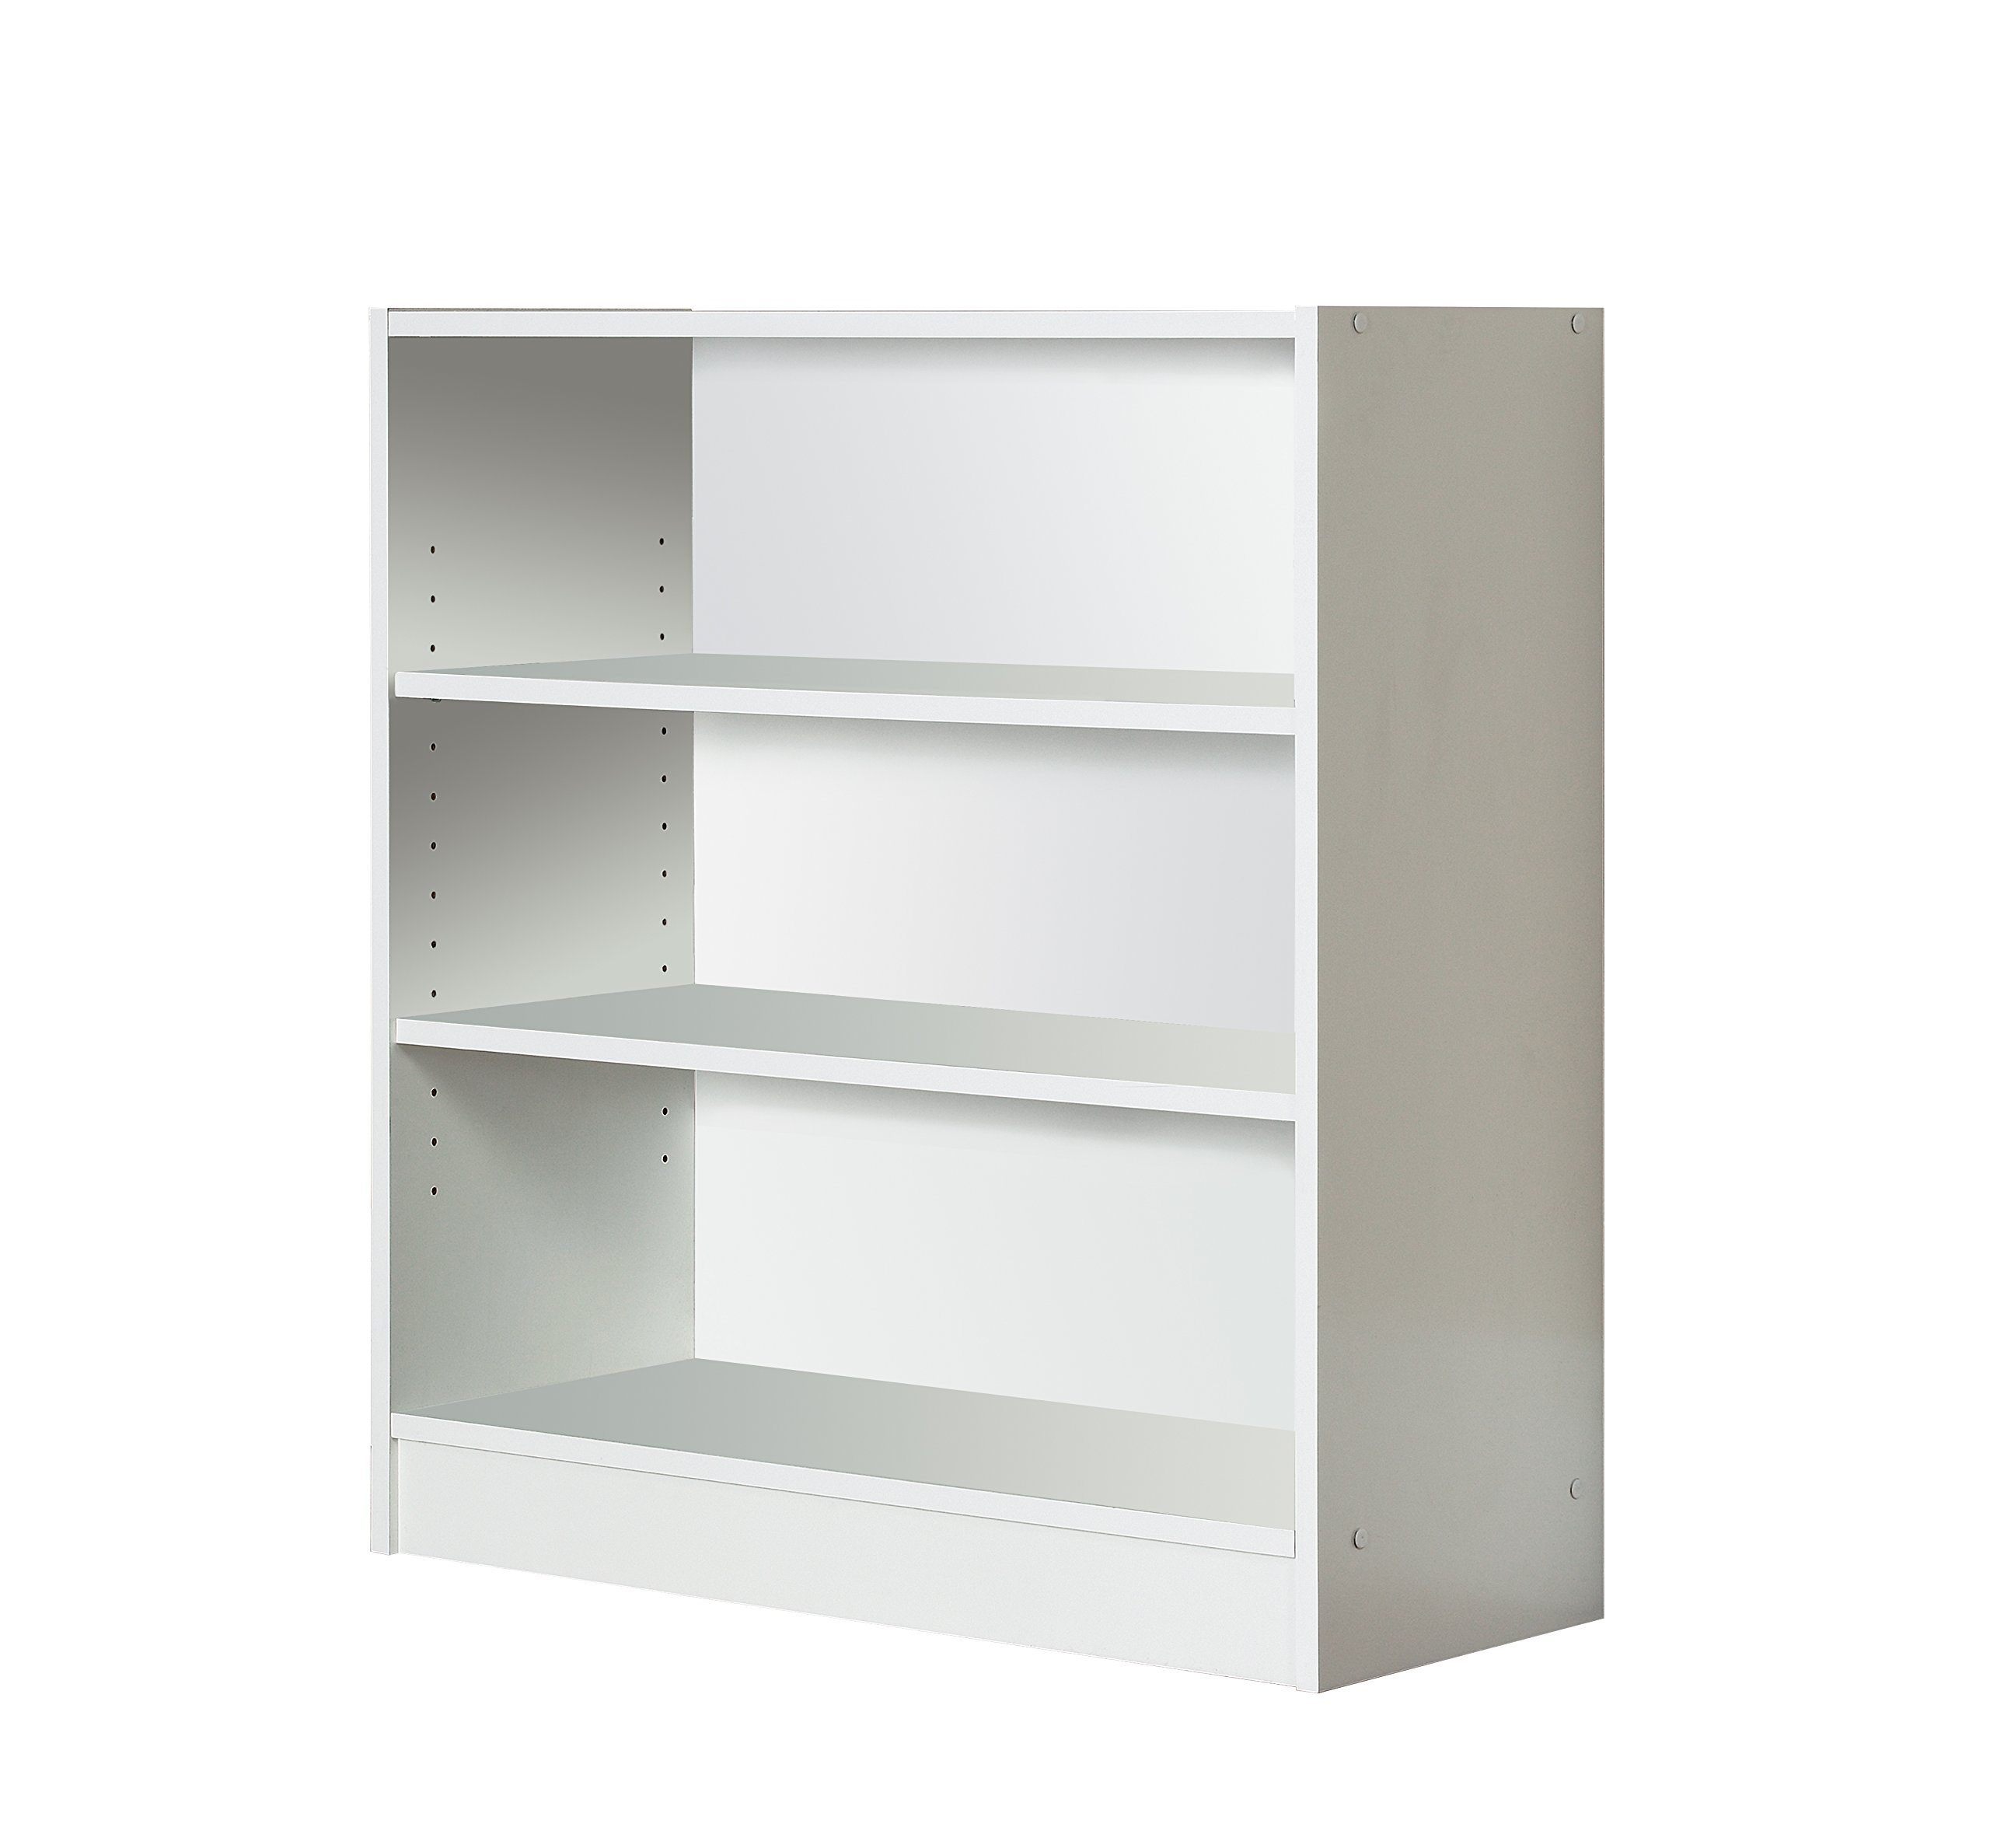 Mylex Three Shelf Bookcase; Two Adjustable Shelves; 11.63 x 29.63 x 31.63 Inches, White, Assembly Required (43061)